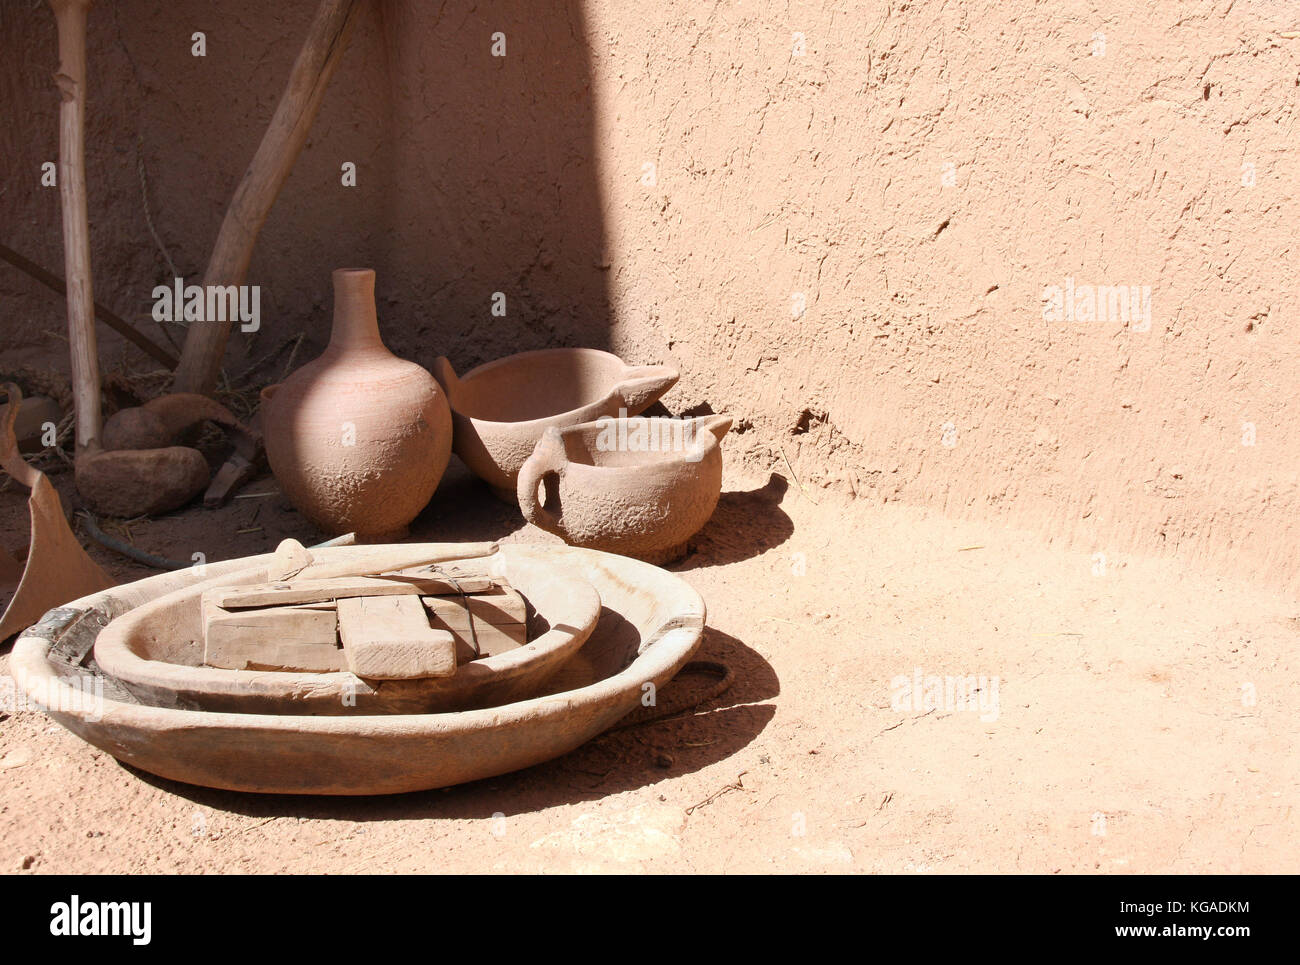 Moroccan vase stock photos moroccan vase stock images alamy traditional clay pottery in the moroccan house kasbah ait ben haddou ait benhaddou reviewsmspy